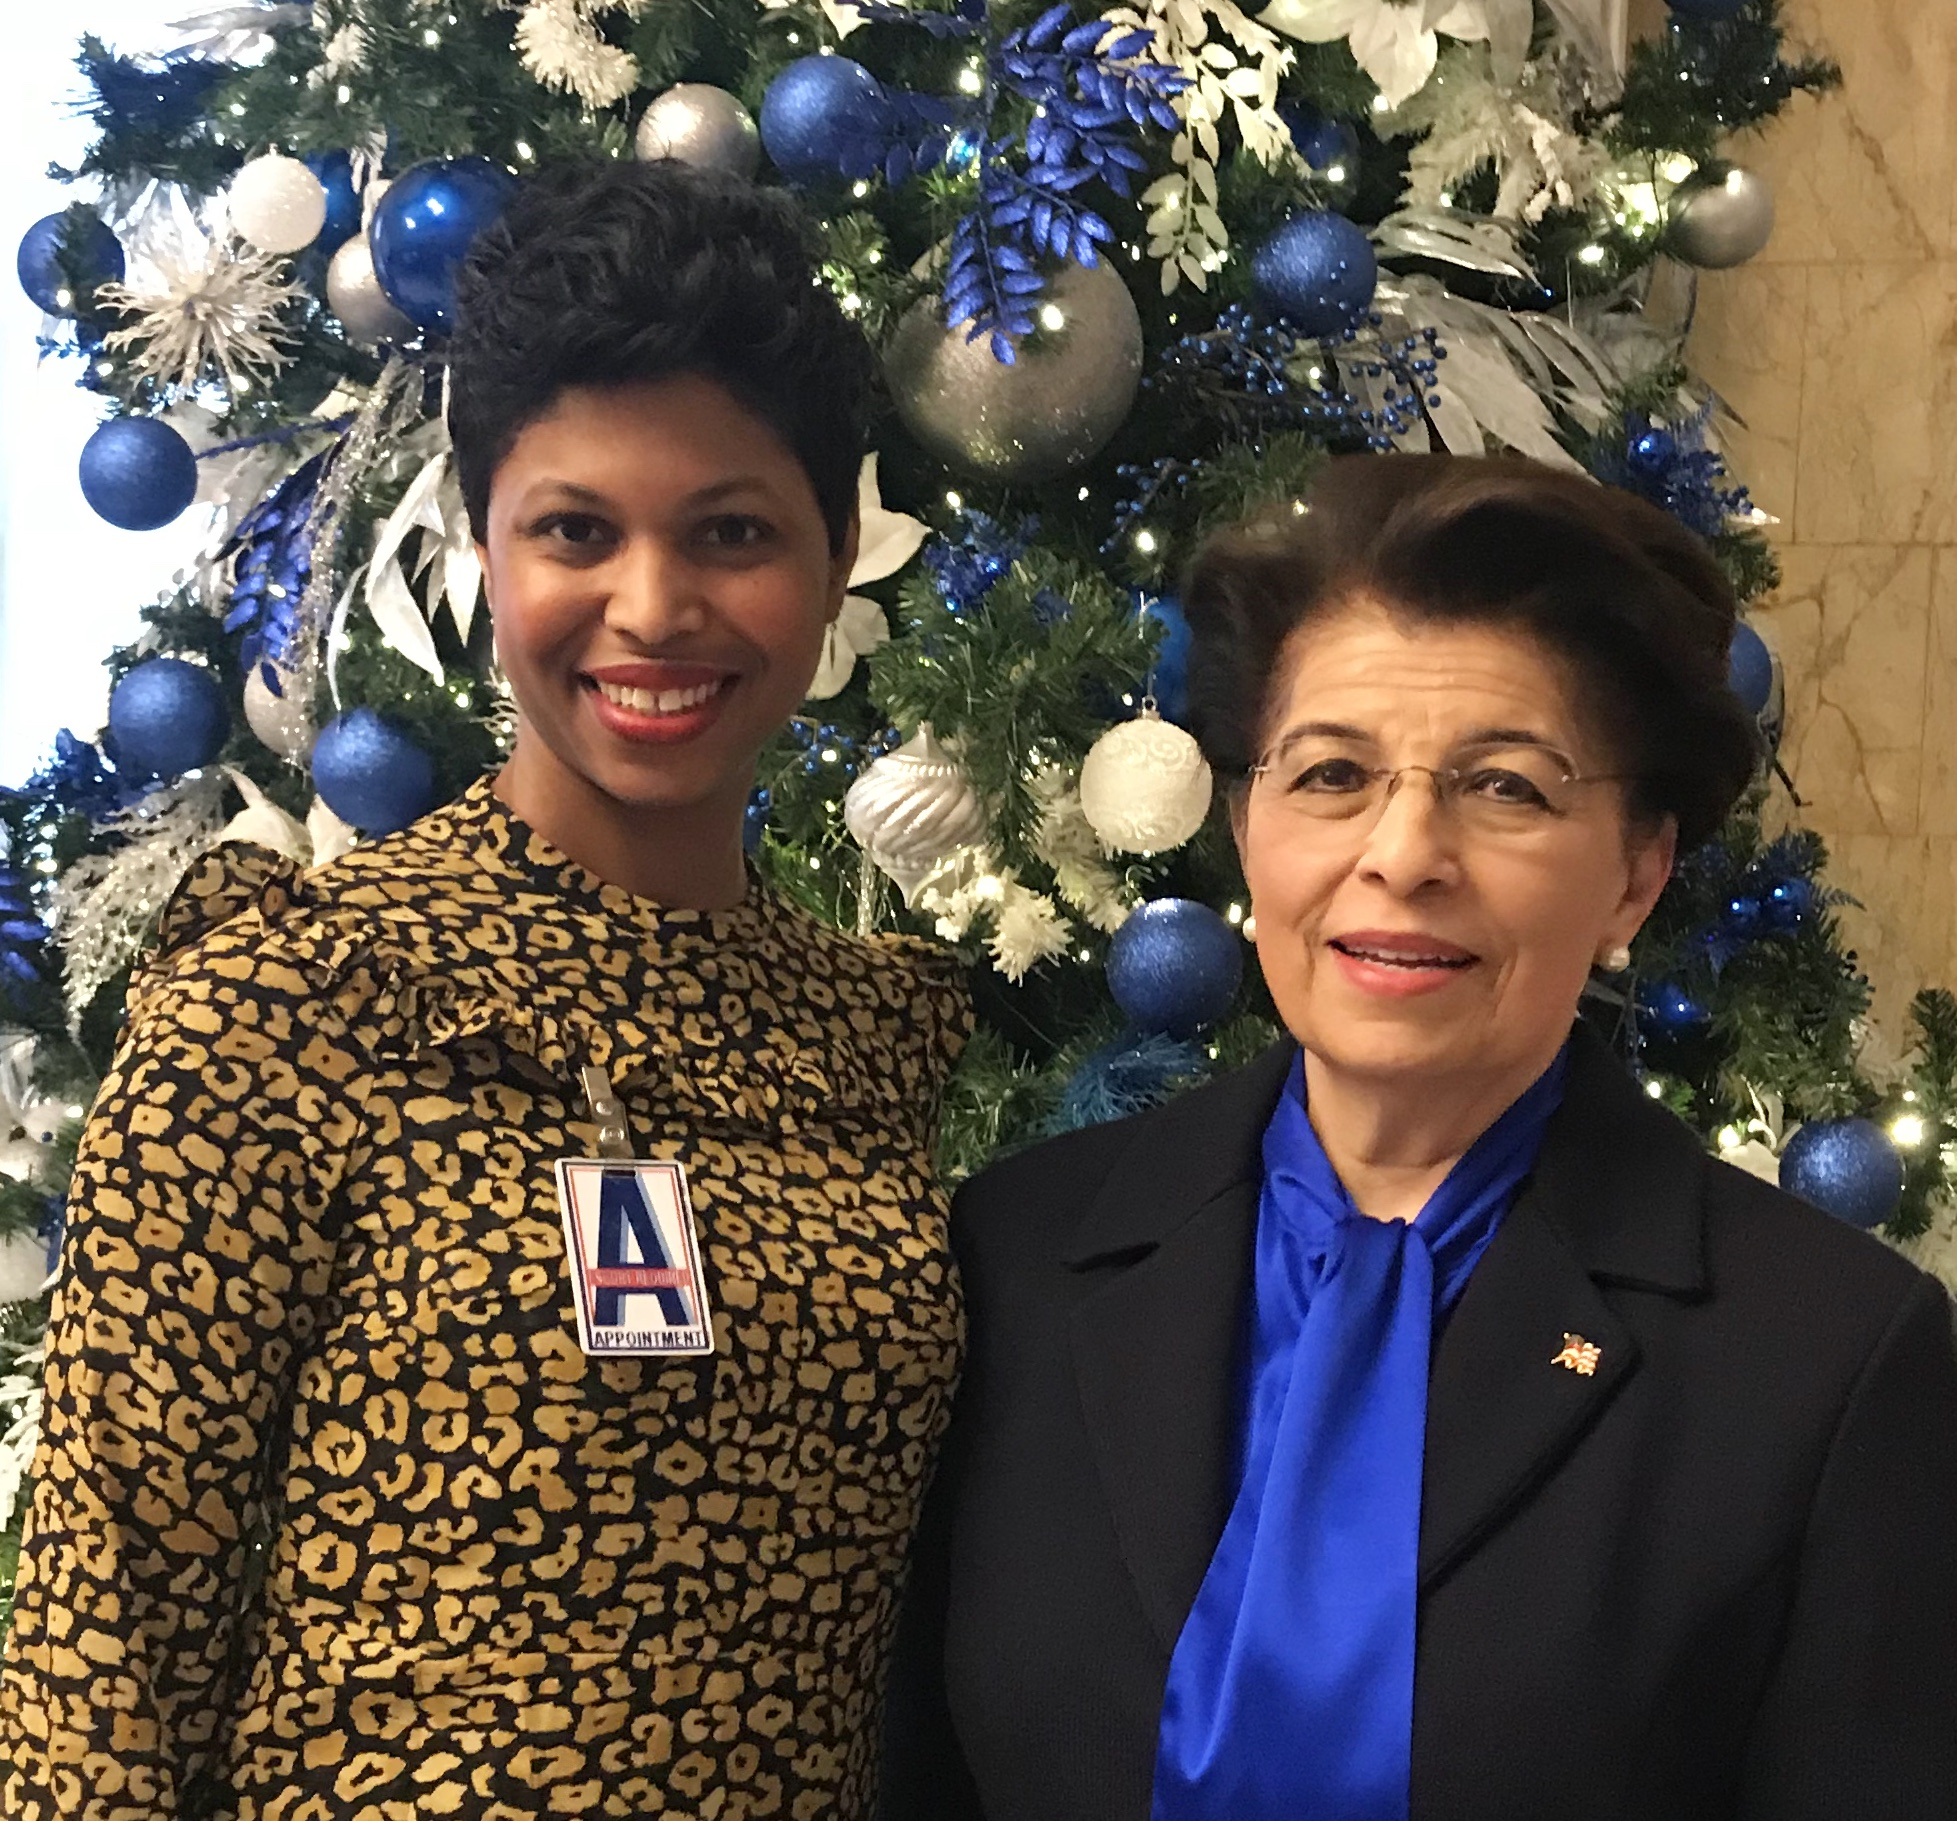 Dionne Nicholls, Program Director for Financially CLEAN and Treasurer Jovita Carranza at the FLEC Meeting December 16th, 2017